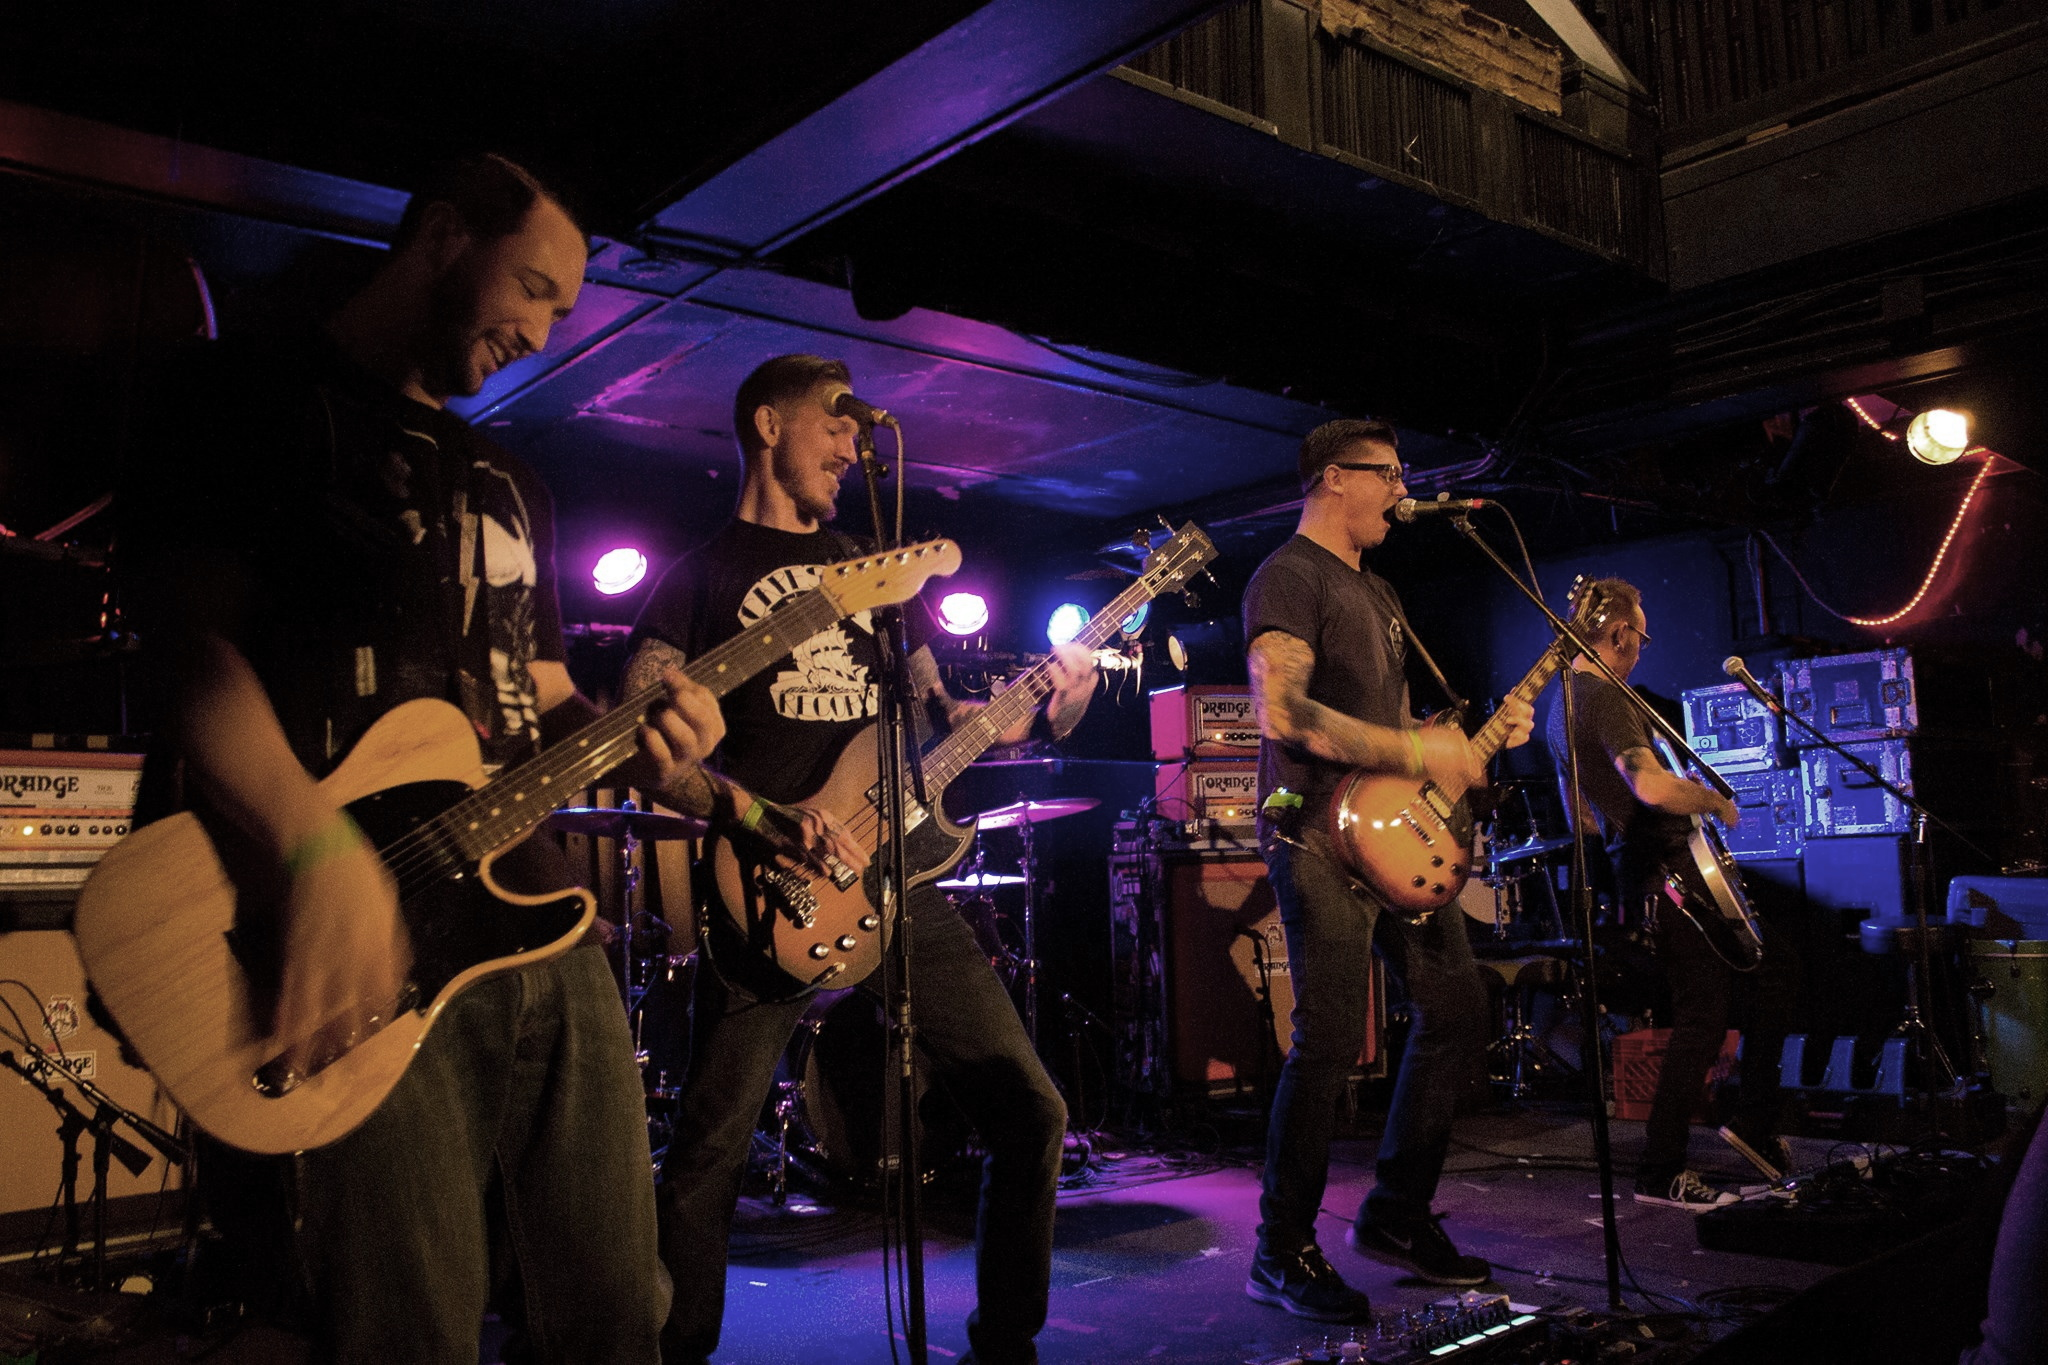 Lost Years  Melodic Progressive Pop-Punk From Chicago/Indiana. Fomed in 2010, The Lost Years is still breaking bottles in alleys and playing dives. Some nights it's the other way around.